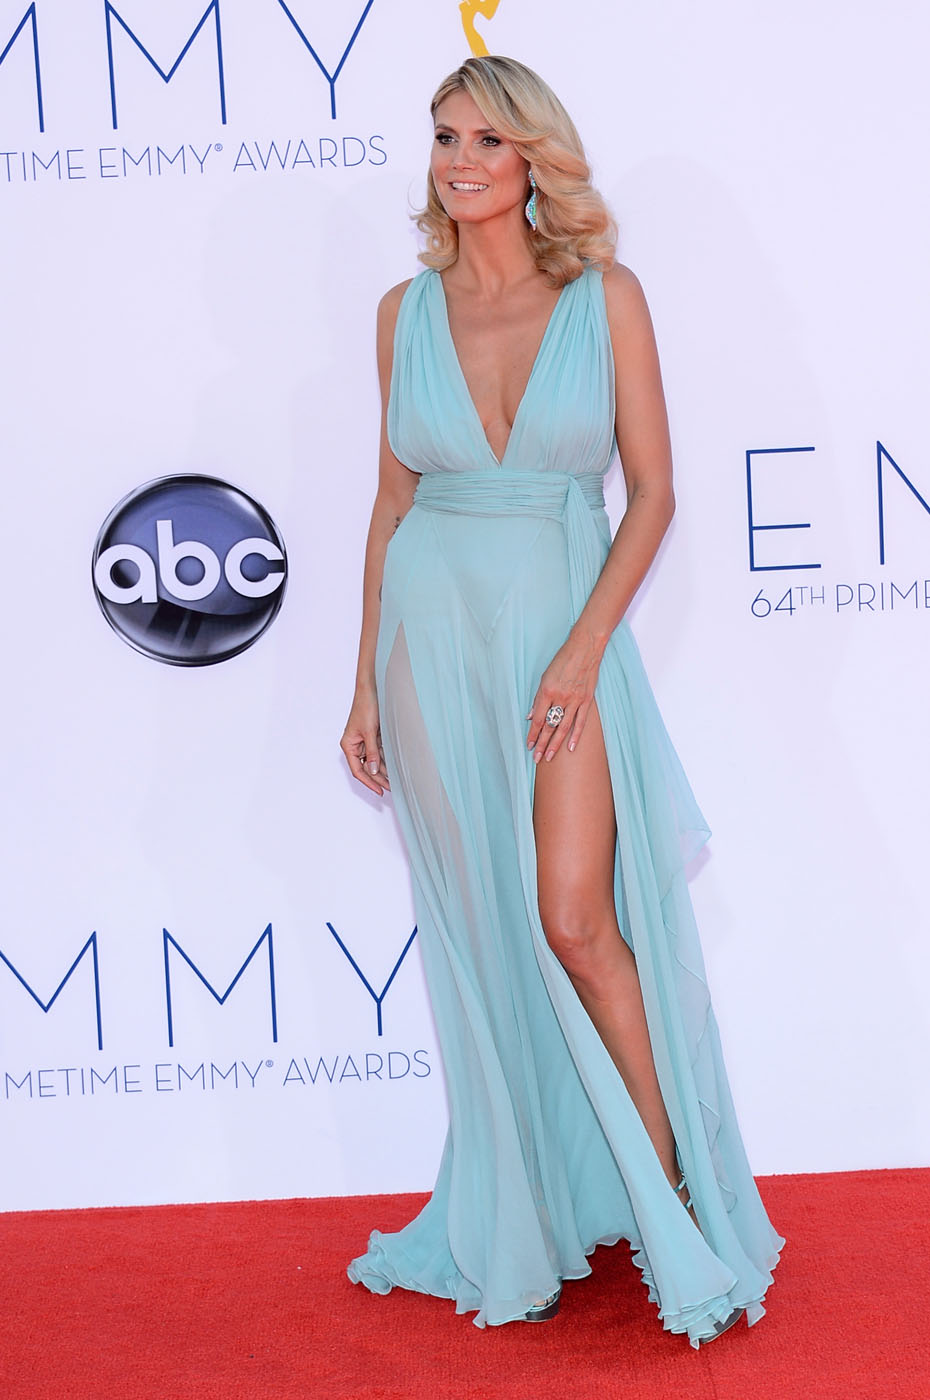 Heidi Klum - 2012 Emmy Awards, Red Carpet Looks